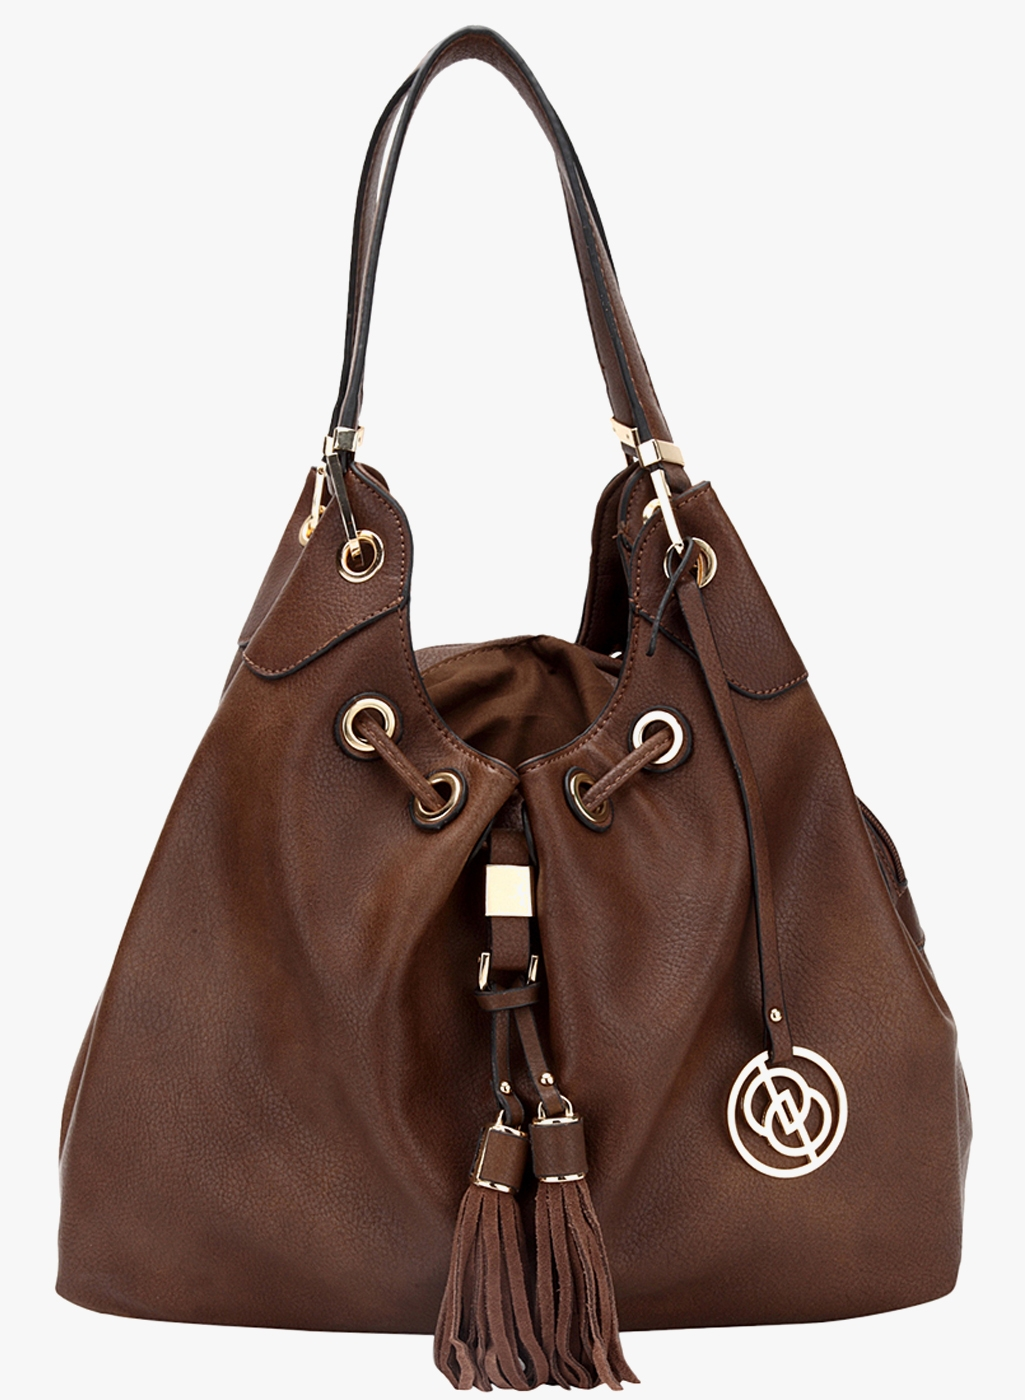 Elespry Brown Faux Leather Handbag